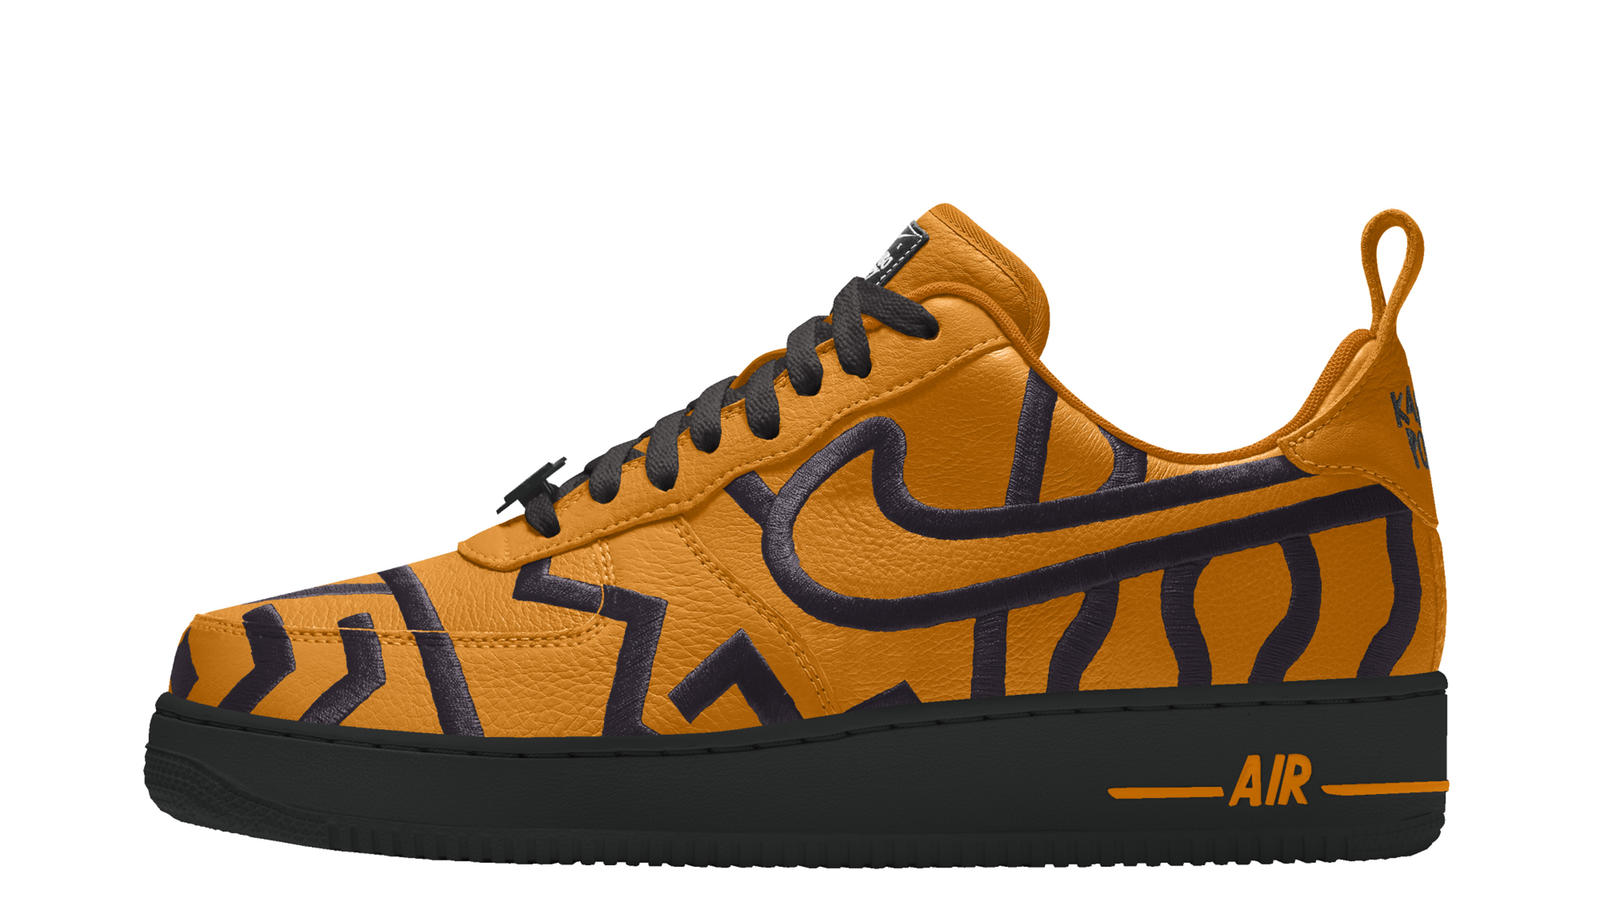 Karabo Poppy Nike By You Air Force 1 1